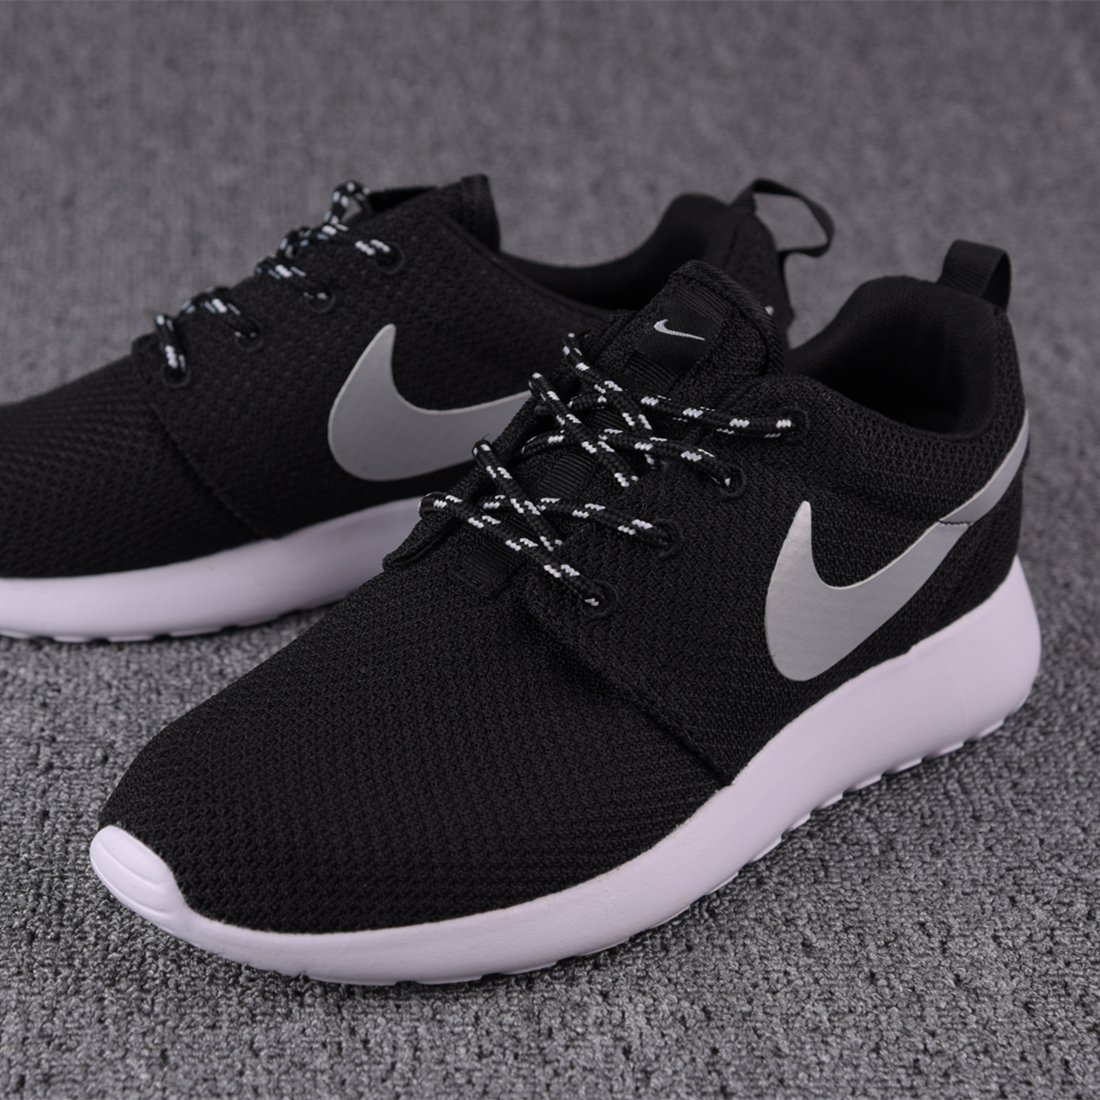 耐克官方旗舰店男鞋跑步鞋Nike Roshe Run One休闲运动女鞋511882